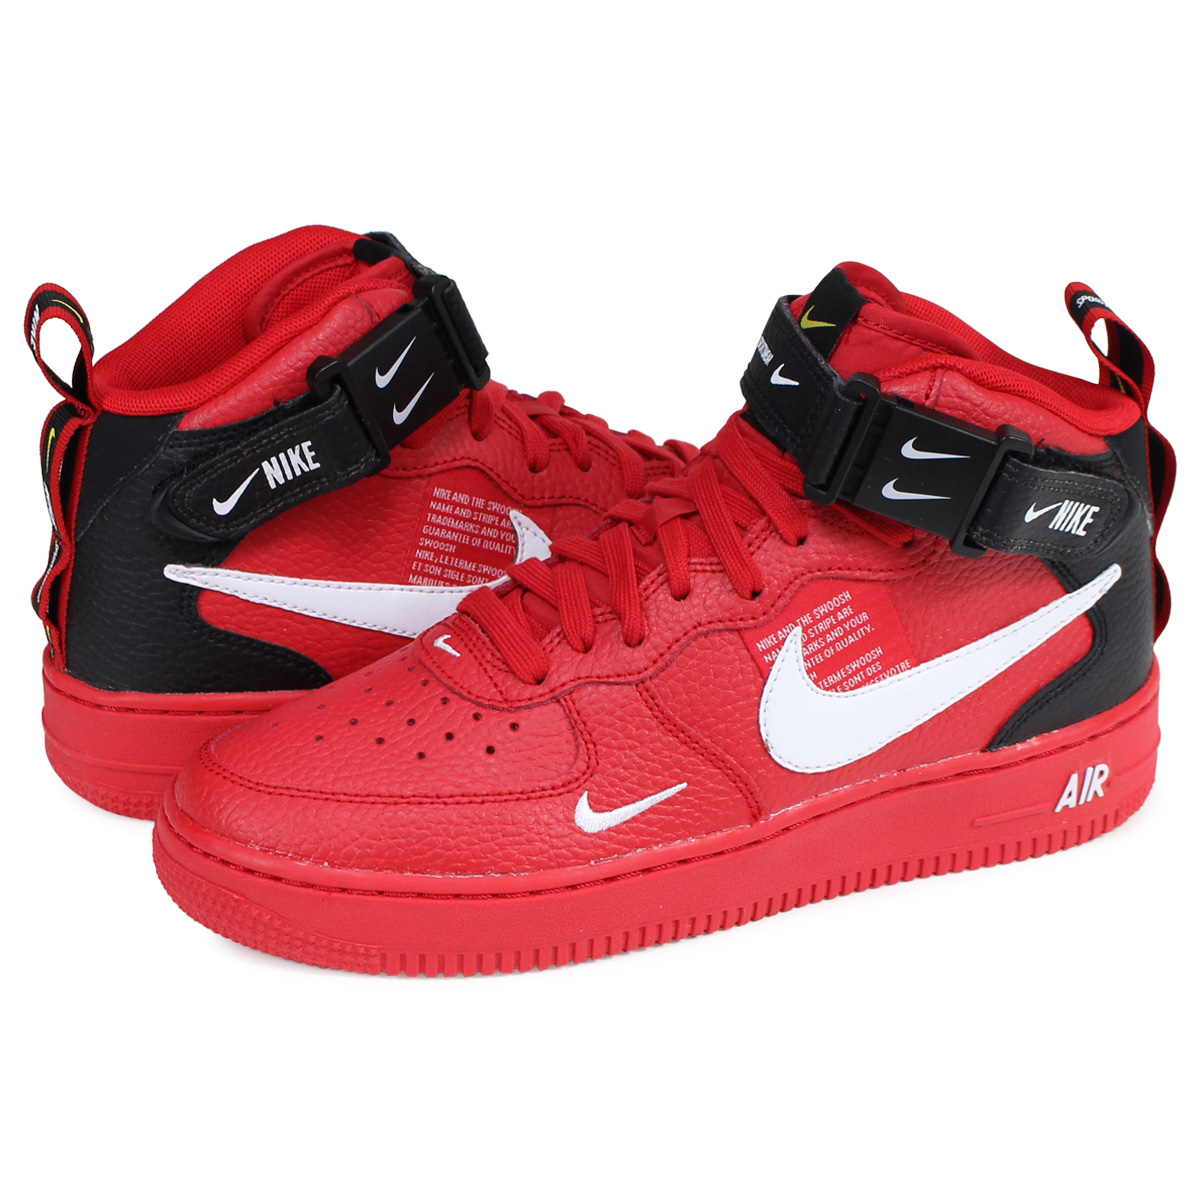 NIKE Air Force 1 Mid GS All Black | Gym | Nike shoes outlet